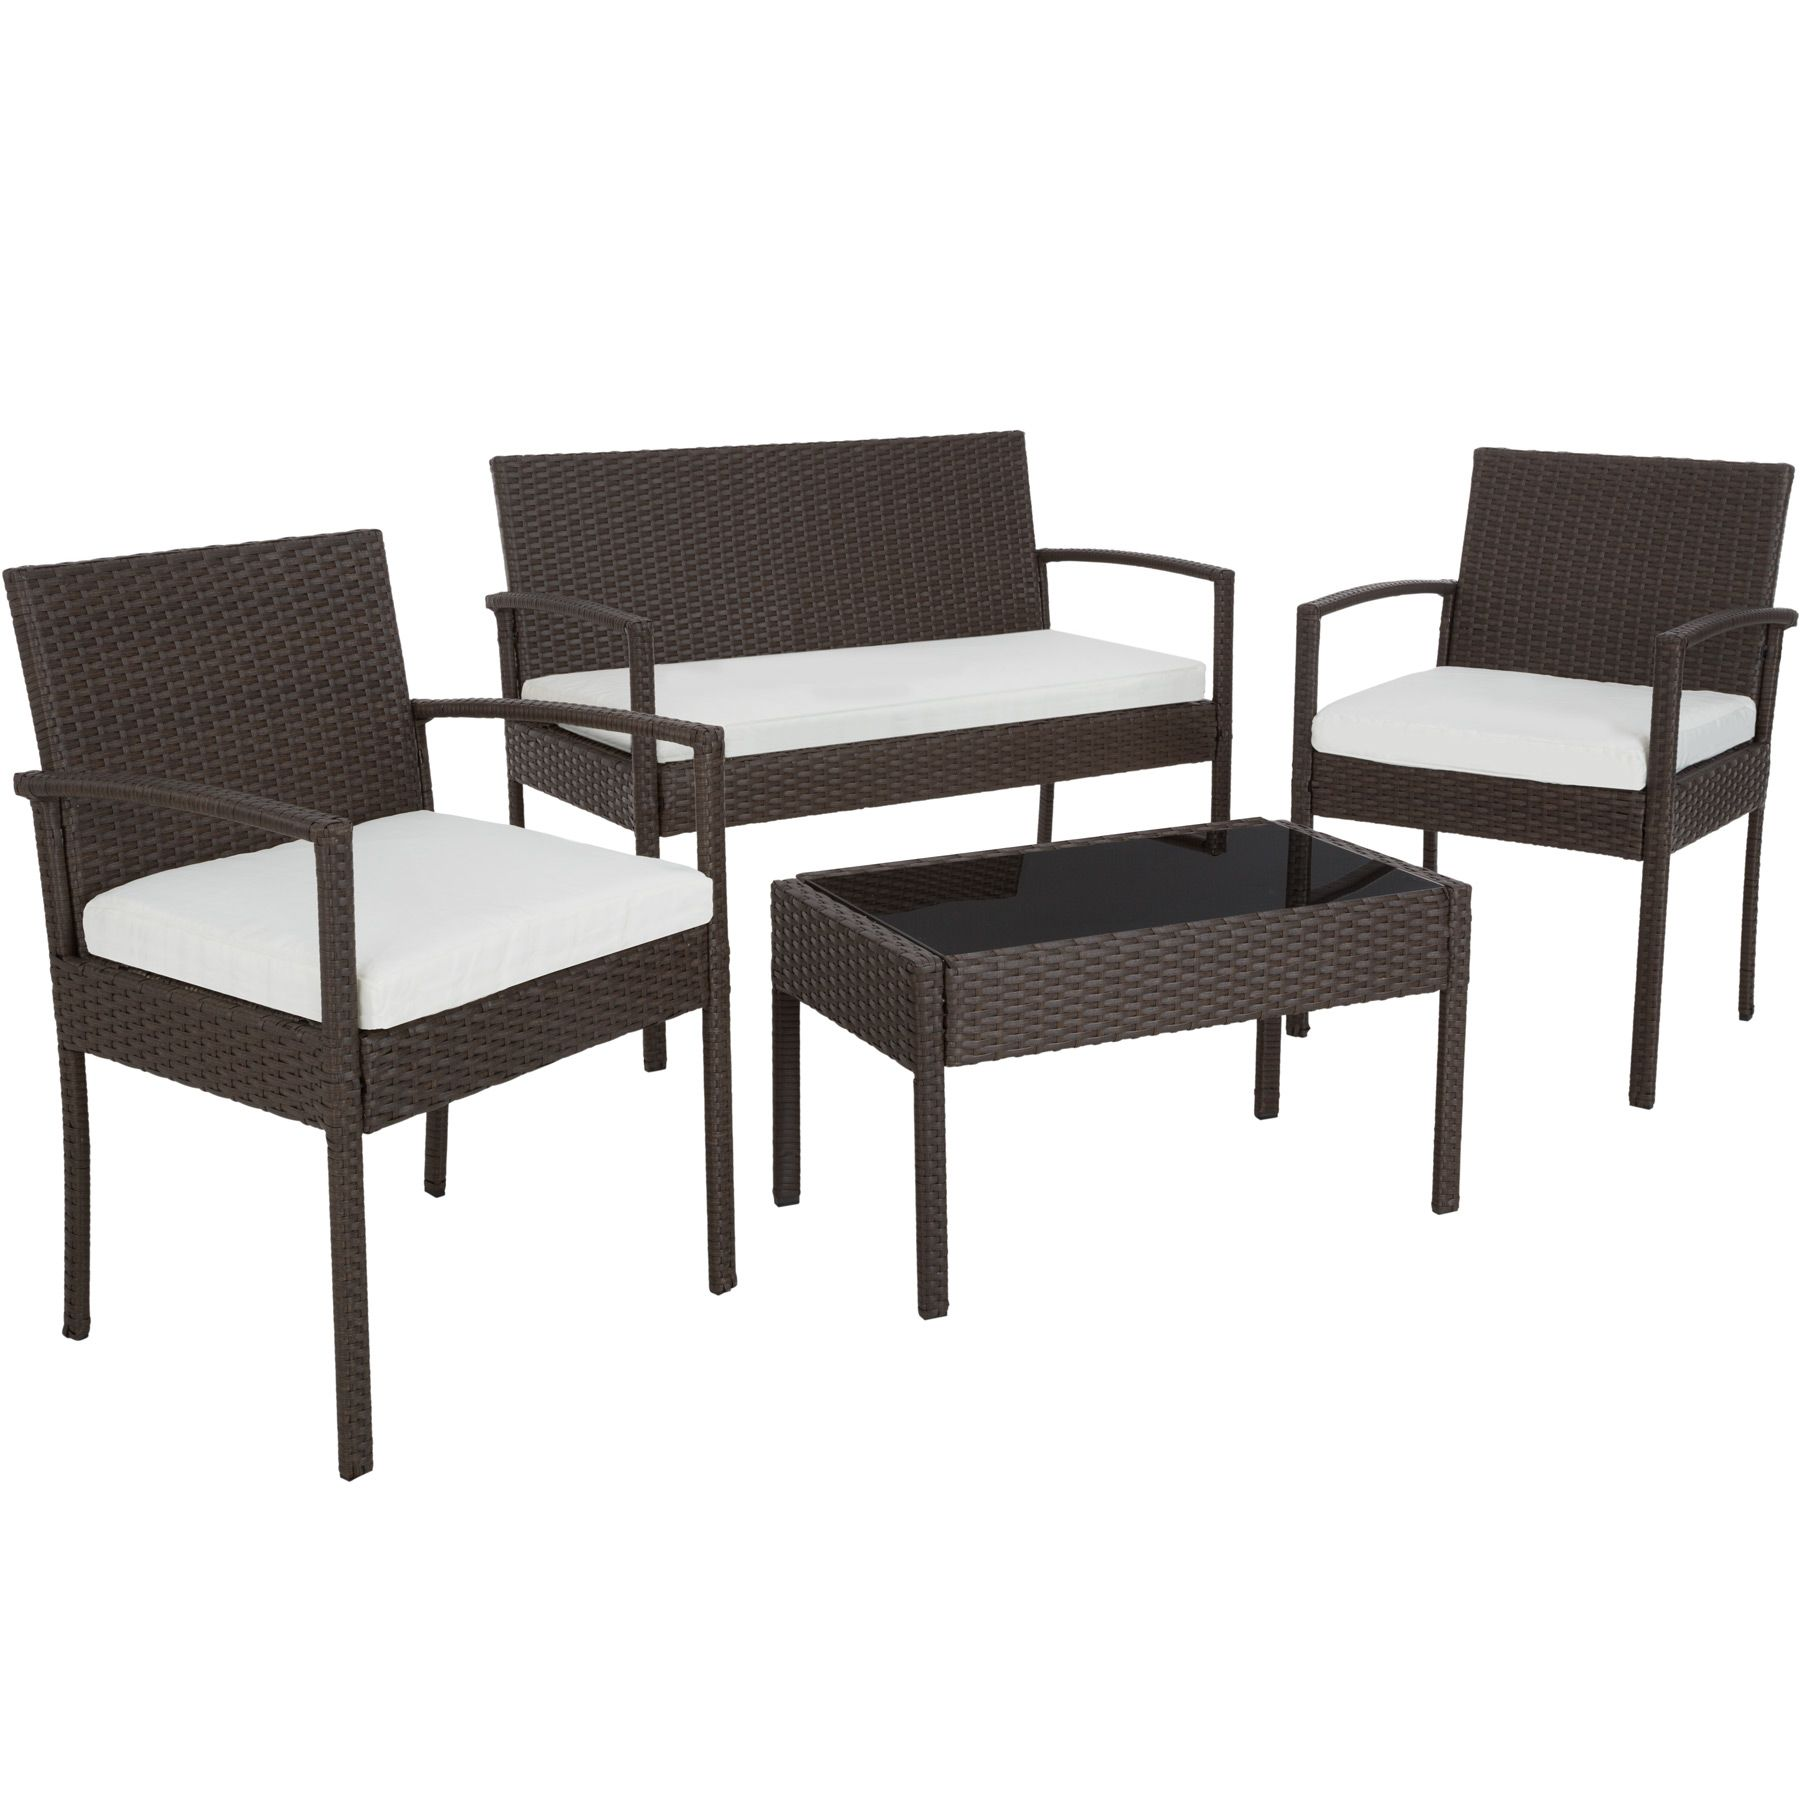 3b399142623 Poly Rattan Garden Furniture 2 Chairs Bench Table Set Outdoor Patio ...